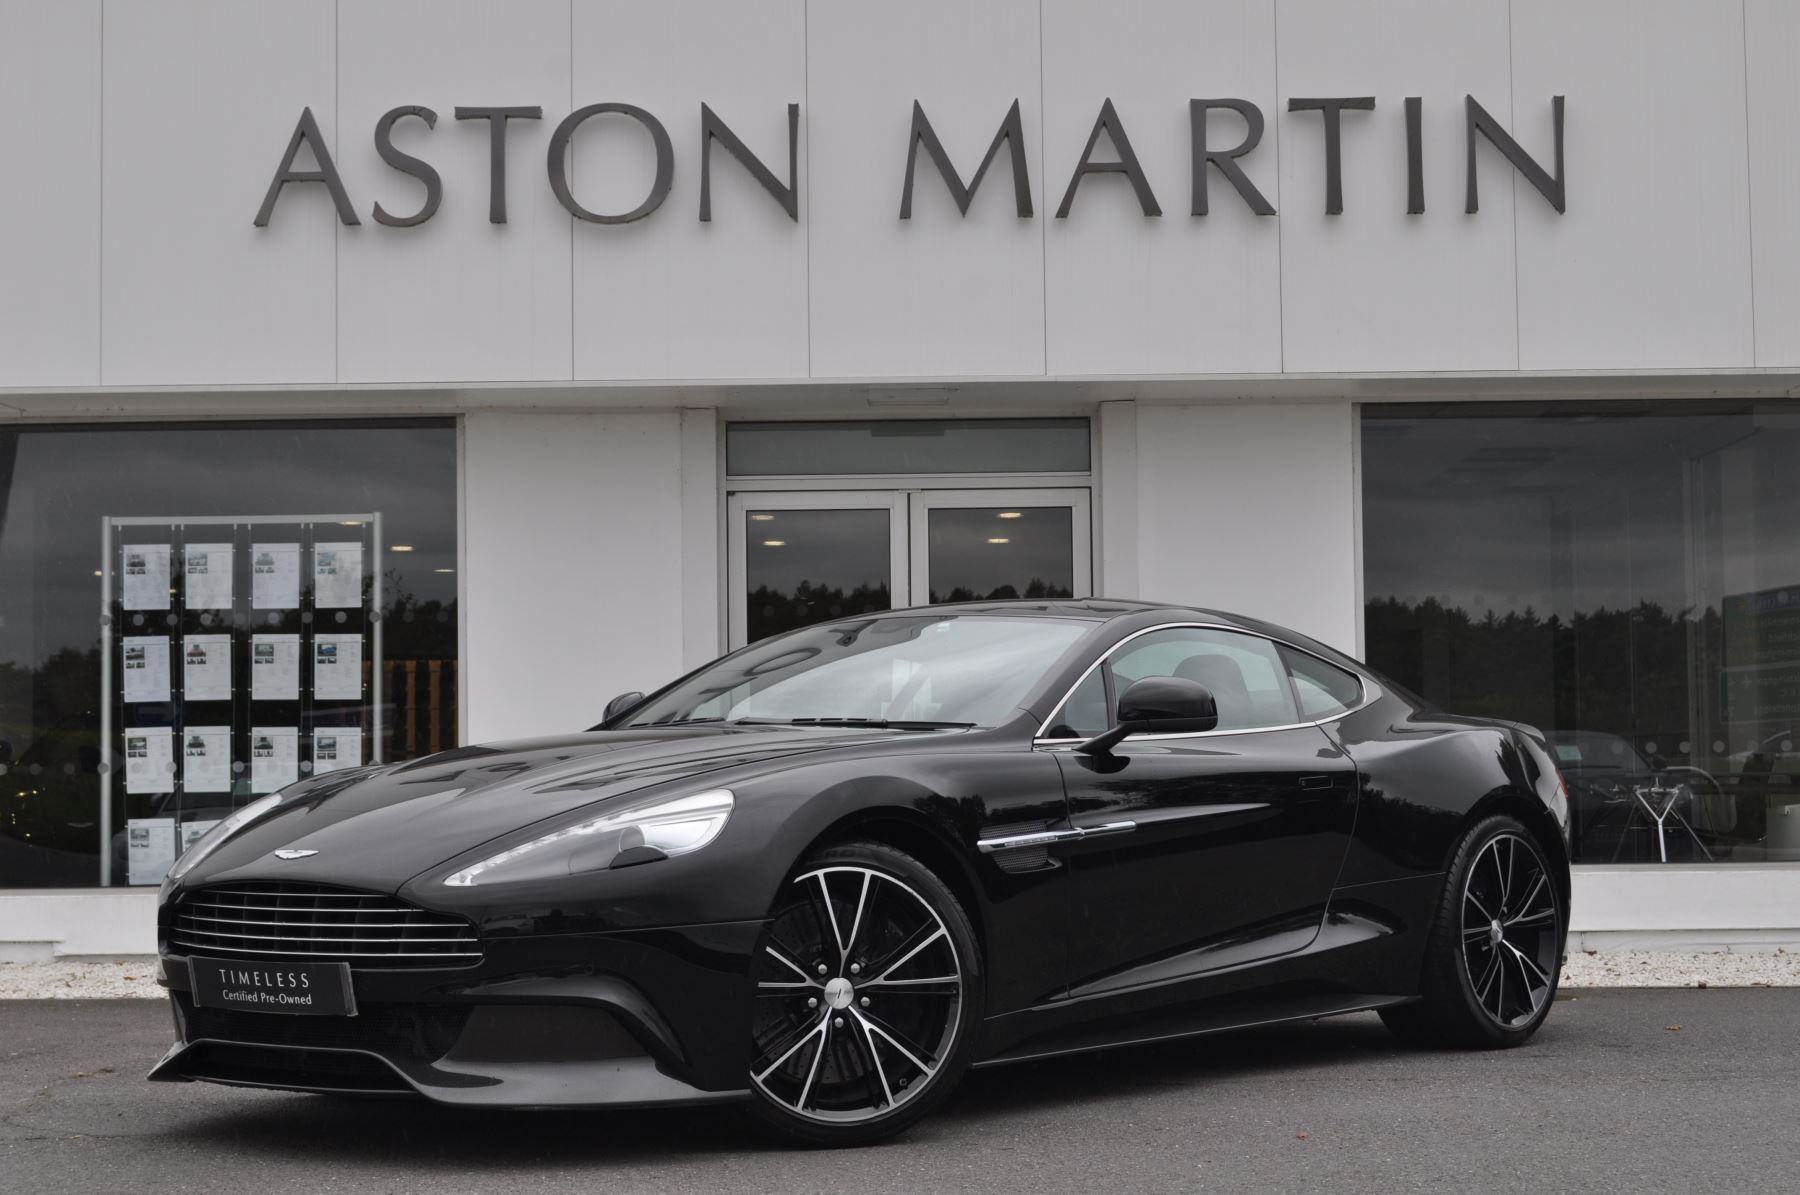 Aston Martin Vanquish V12 2+2 2dr Touchtronic 5.9 Automatic Coupe (2014) image